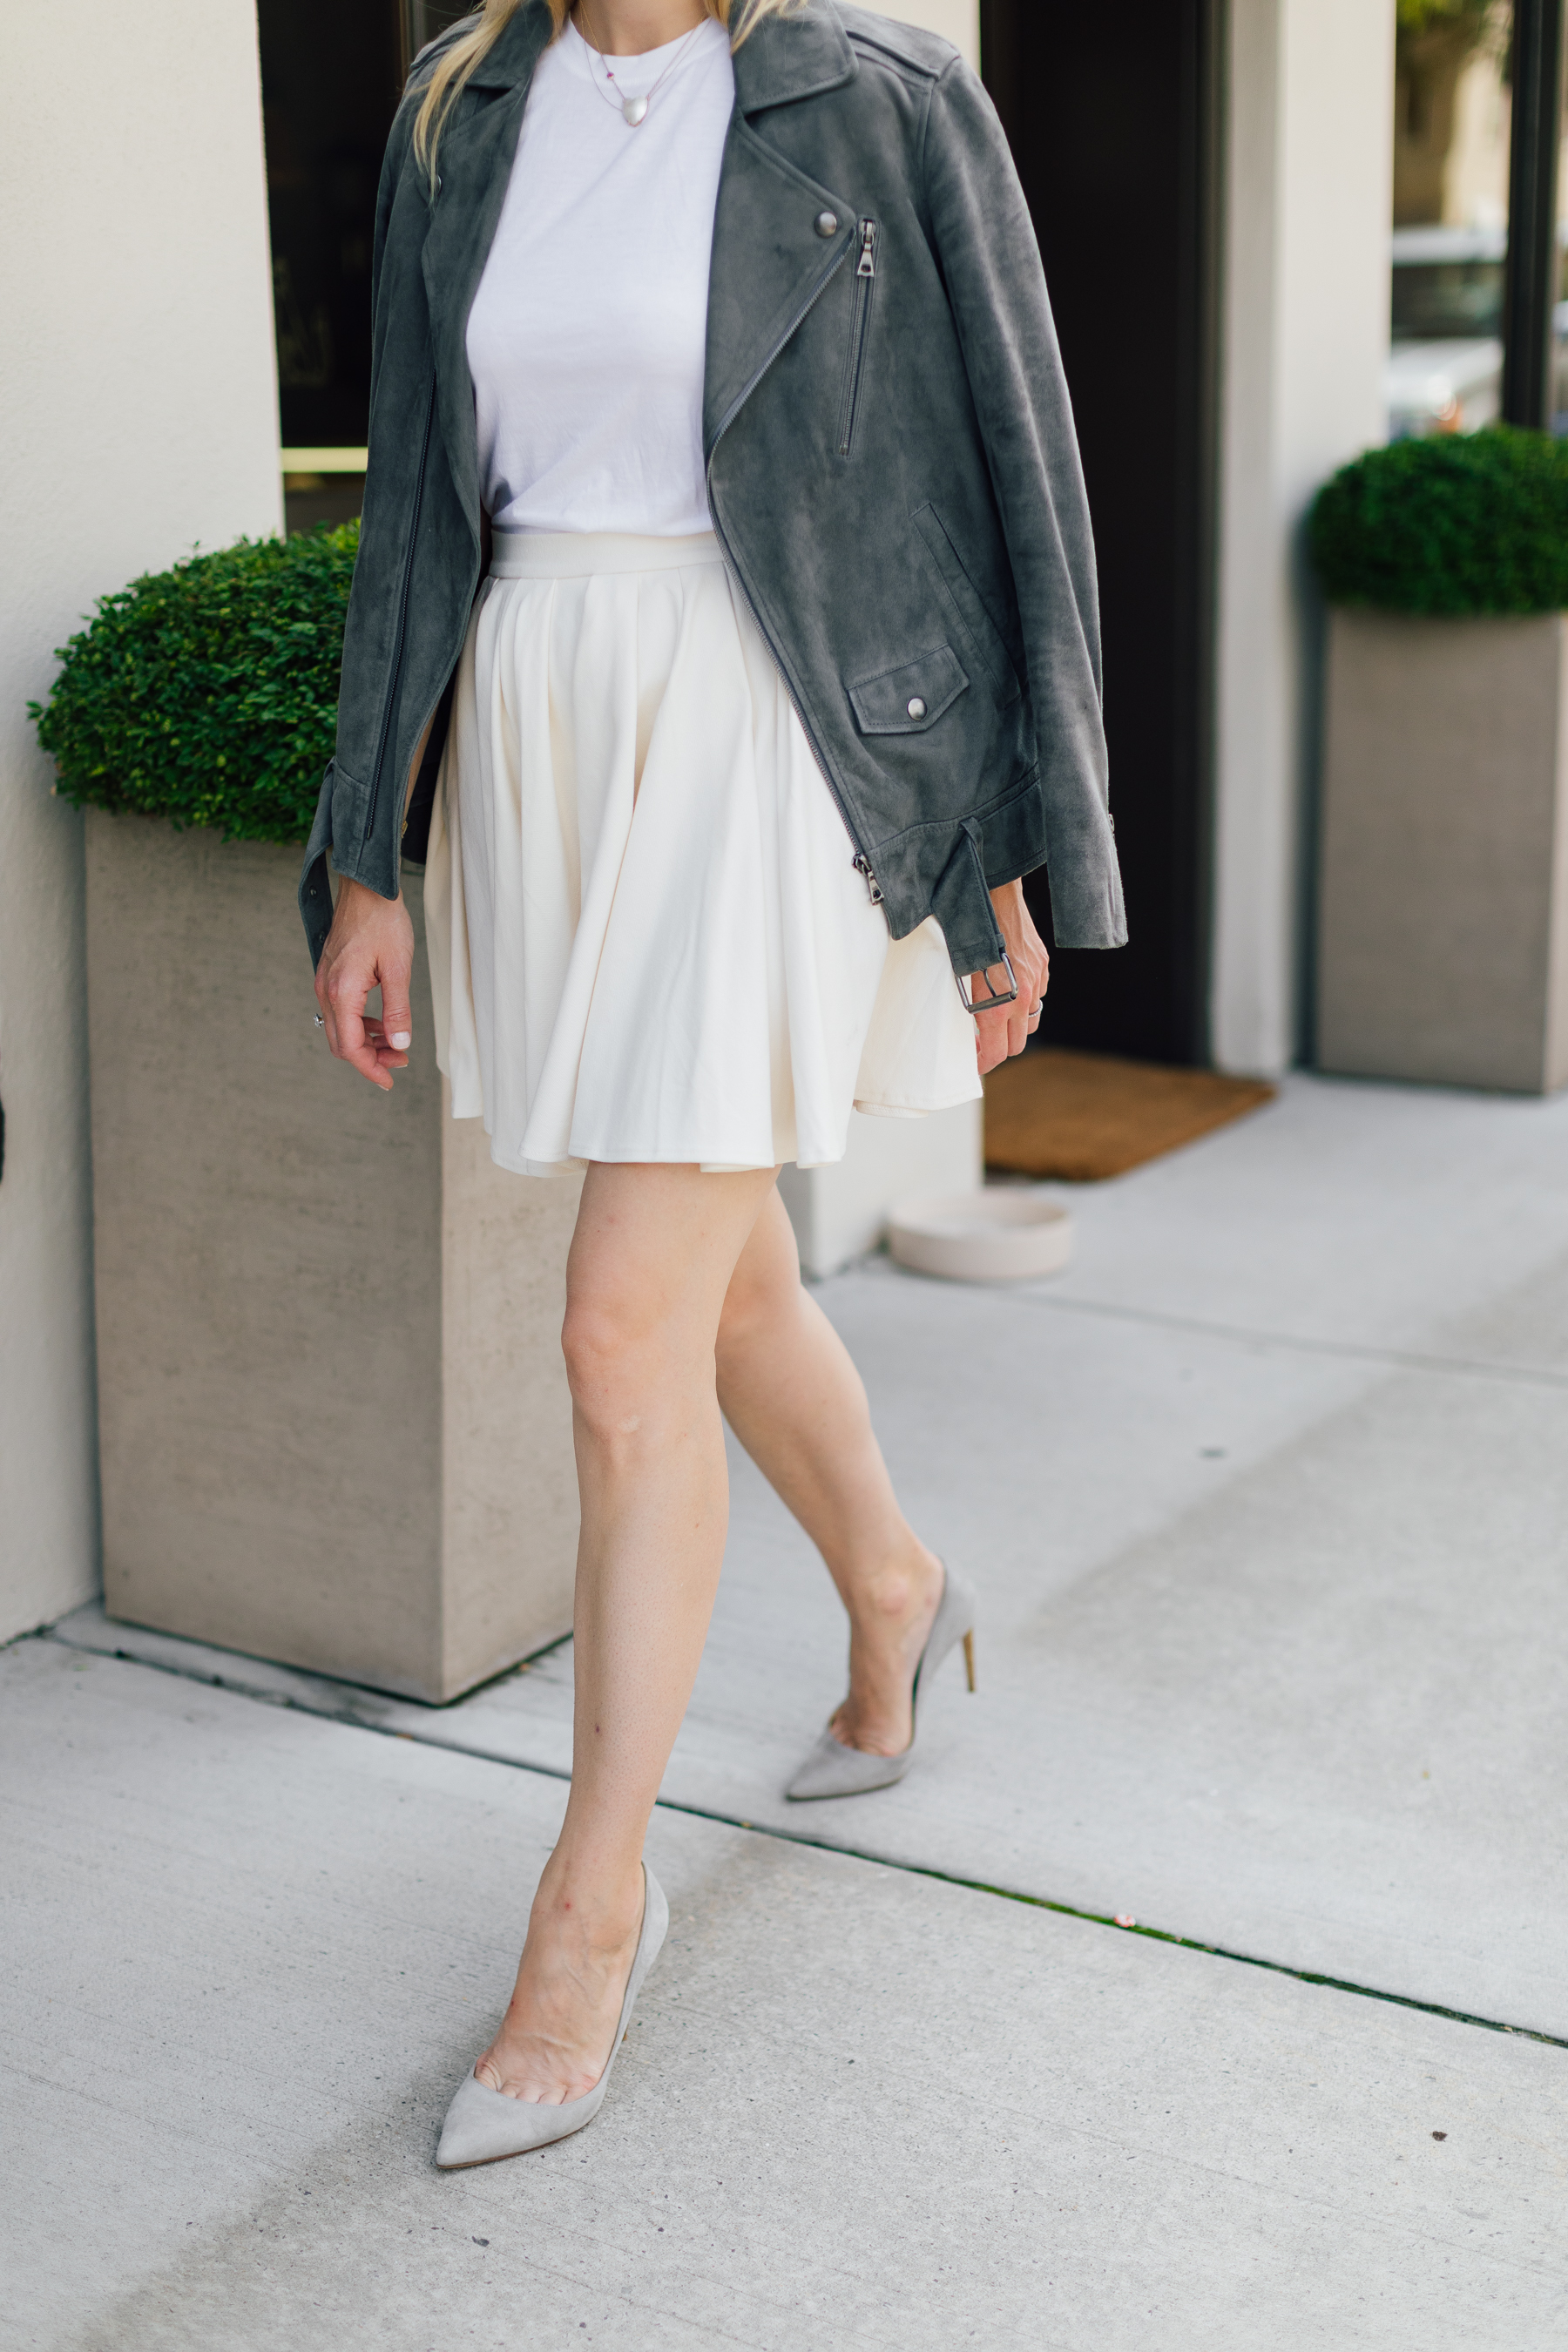 Mini skirt from H&M with a gray suede moto jacket // the girl guide // stephanie trotta